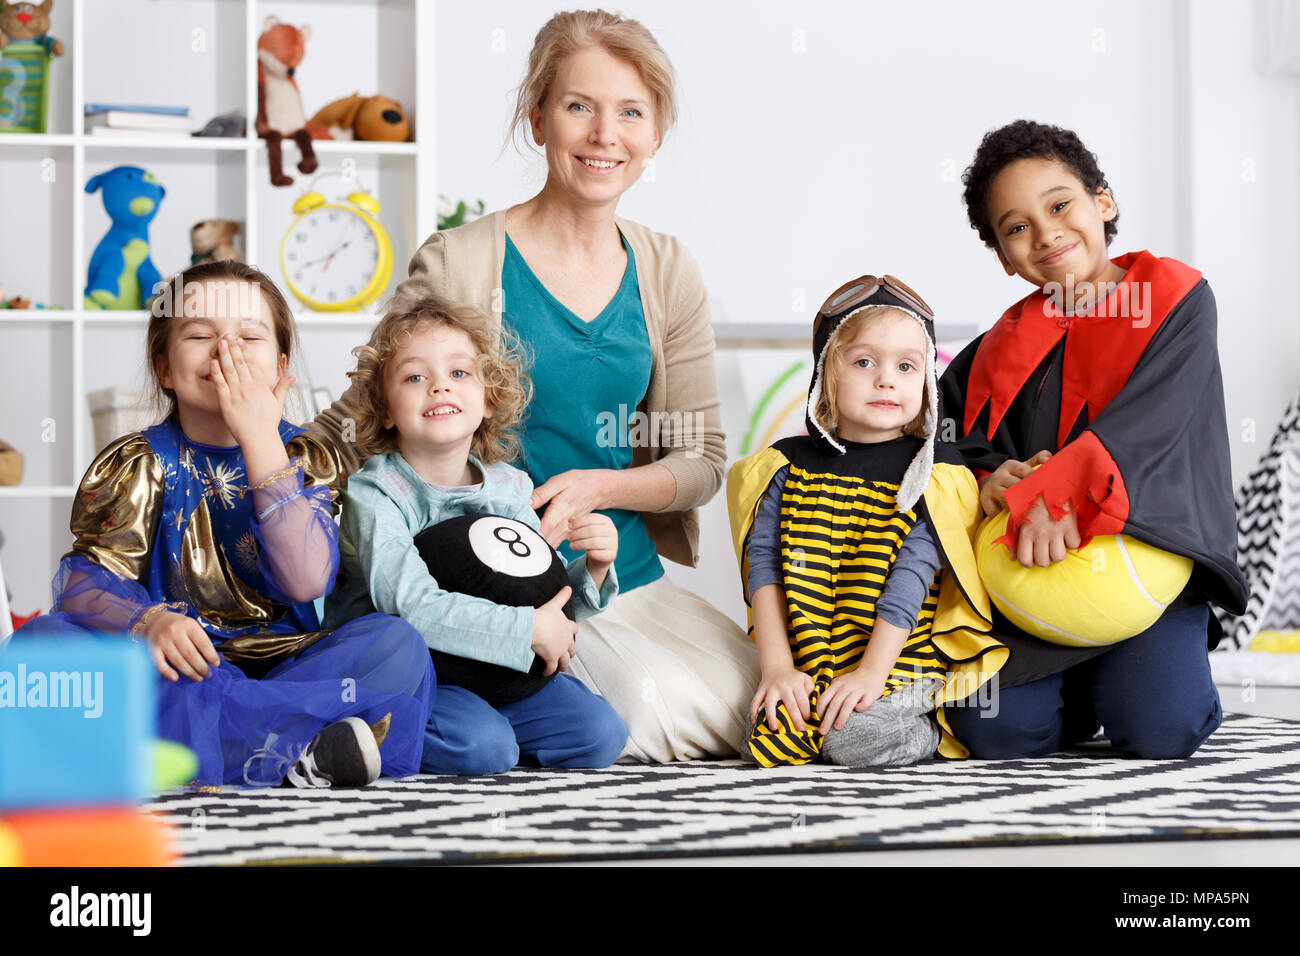 Preschool kids from kindergarten group dressed in colorful costumes - Stock Image